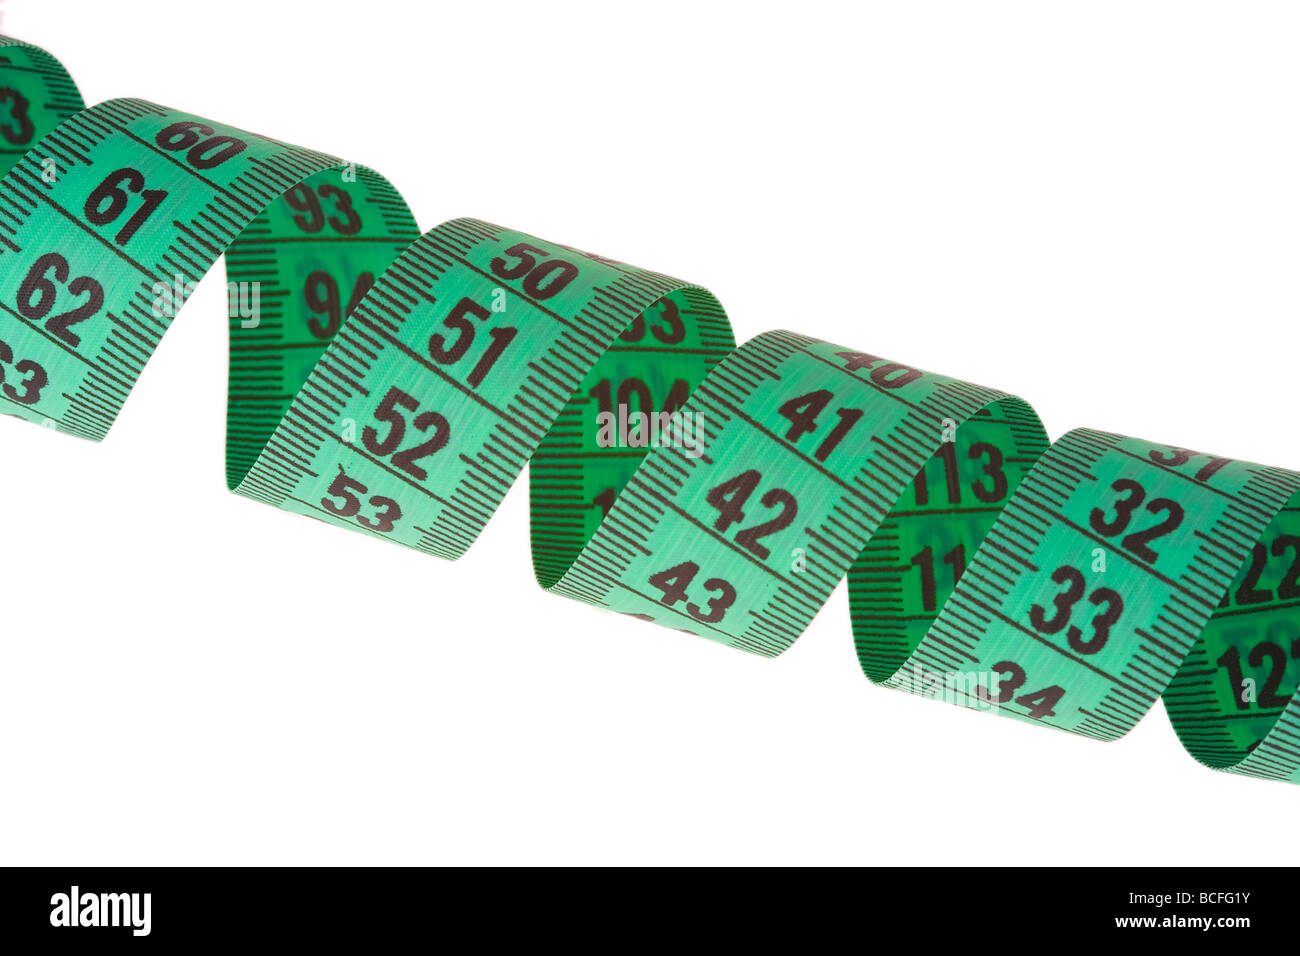 green measuring tape on white background - Stock Image